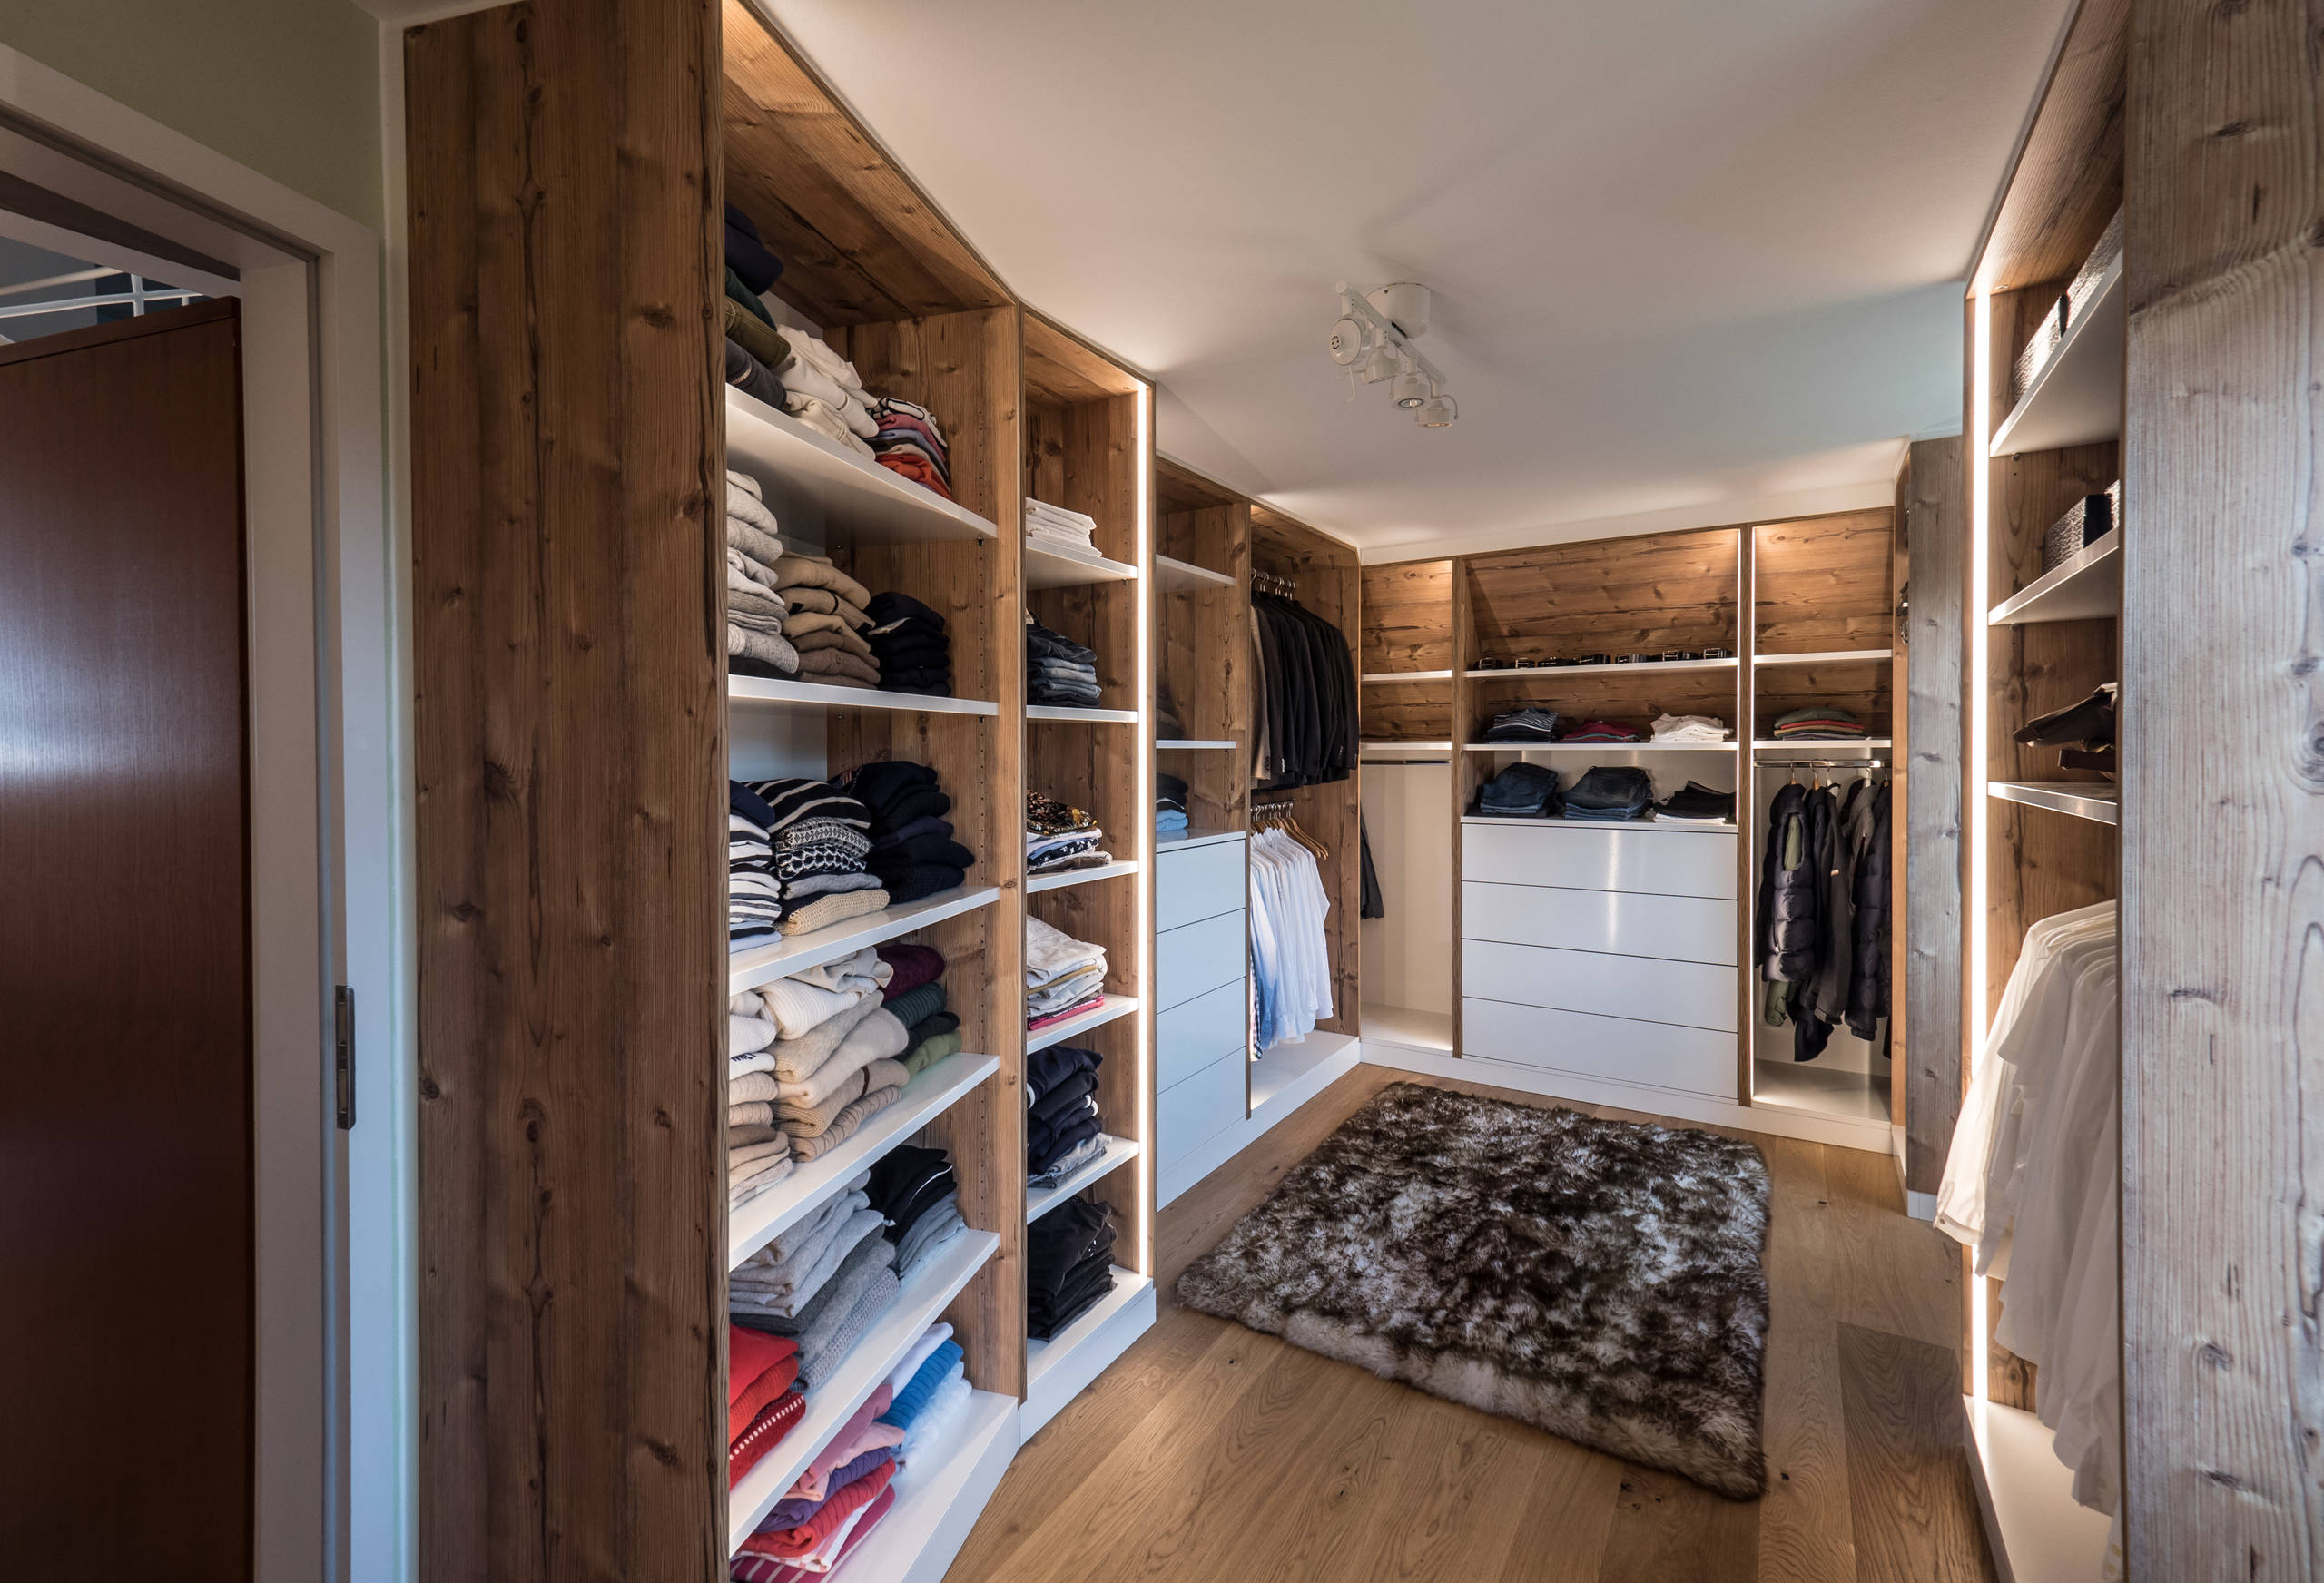 Ankleidezimmer Modern 75 Beautiful Rustic Closet With Open Cabinets Pictures & Ideas - April, 2021 | Houzz